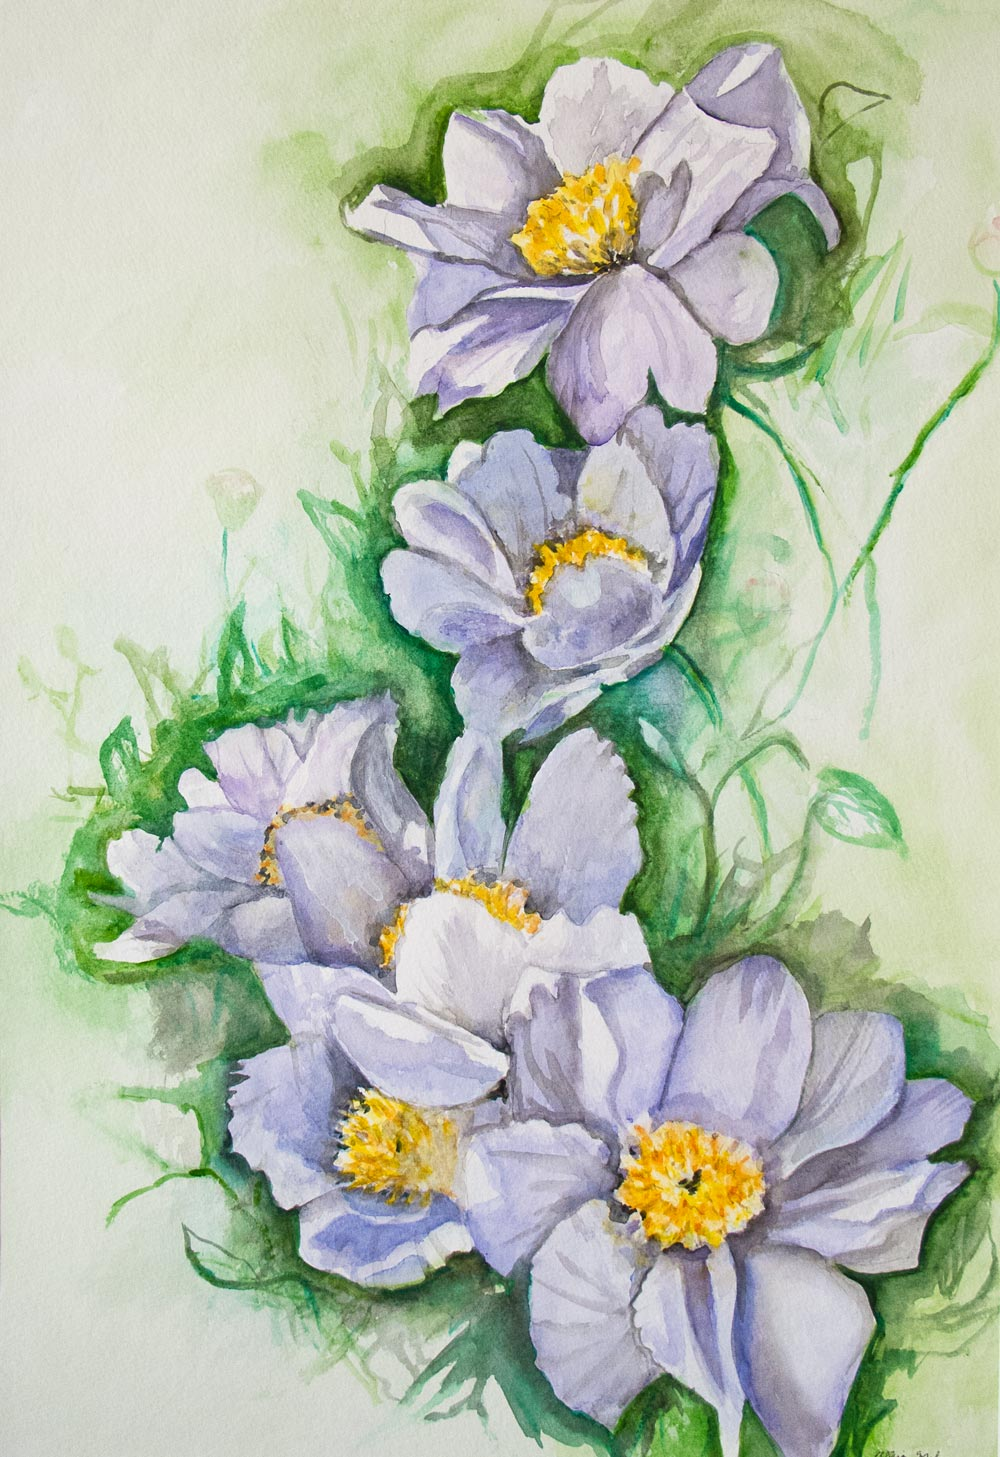 """""""White Flowers"""" by Allison Mahaney"""